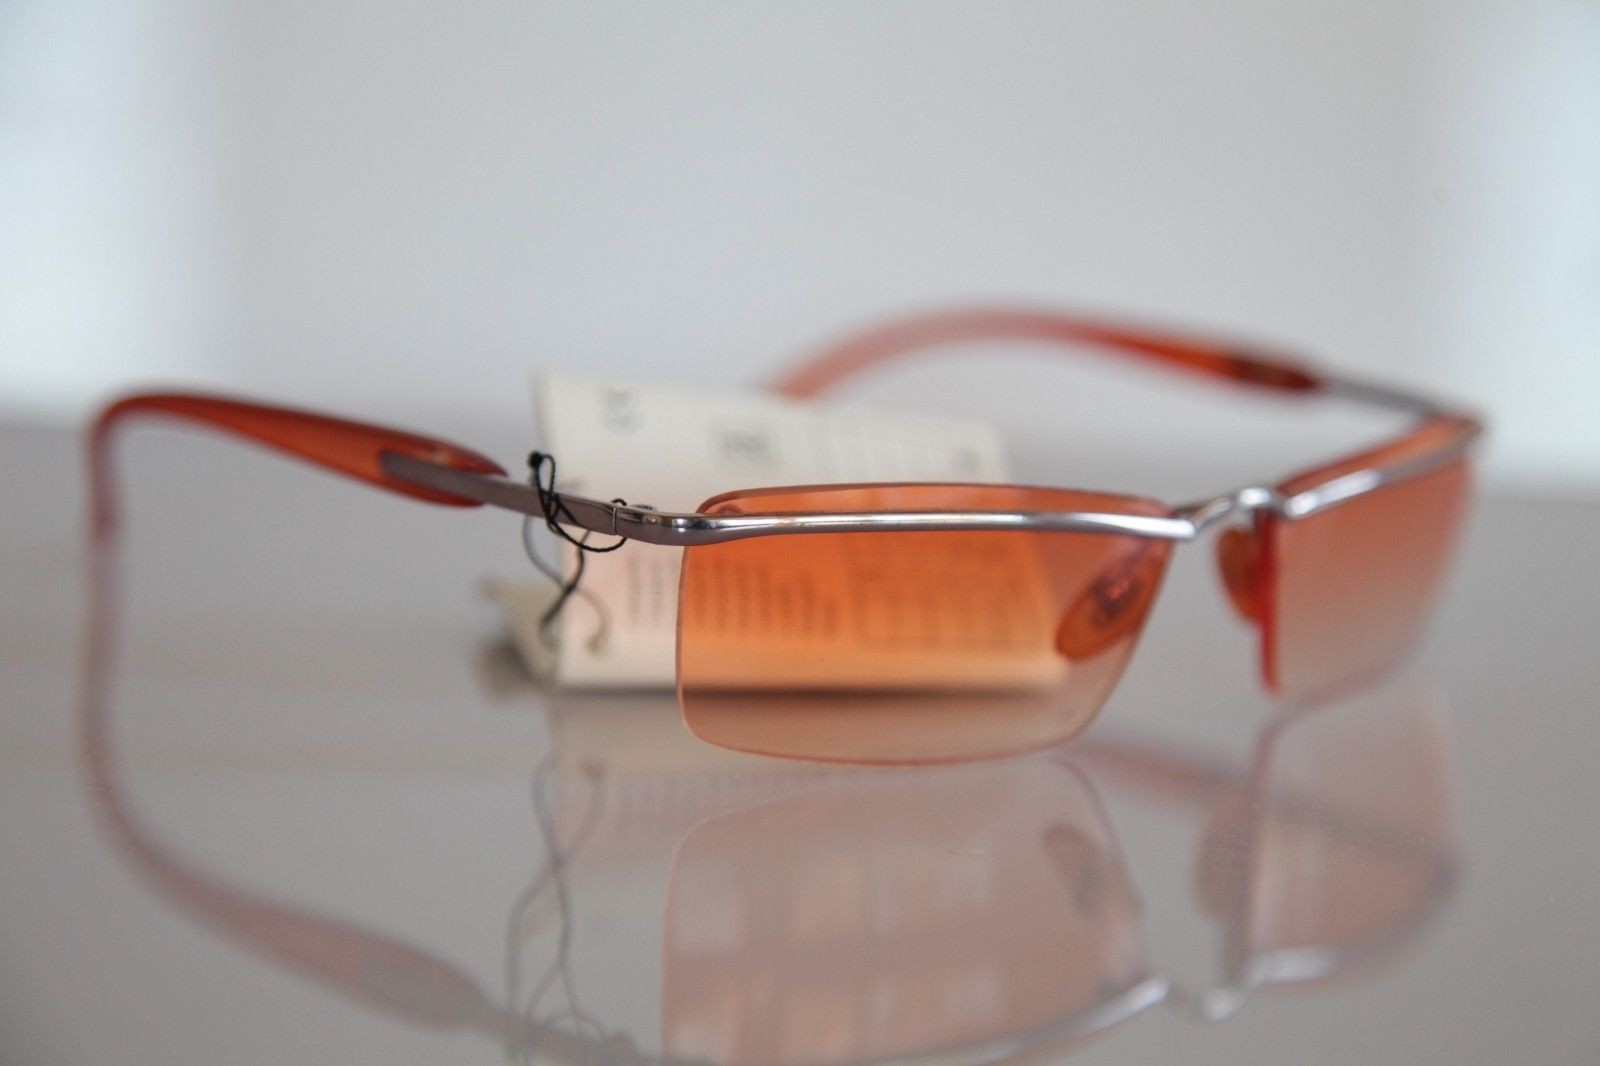 Chrome Rimless Frame, Smoke Orange, Orange lenses - Sunglasses